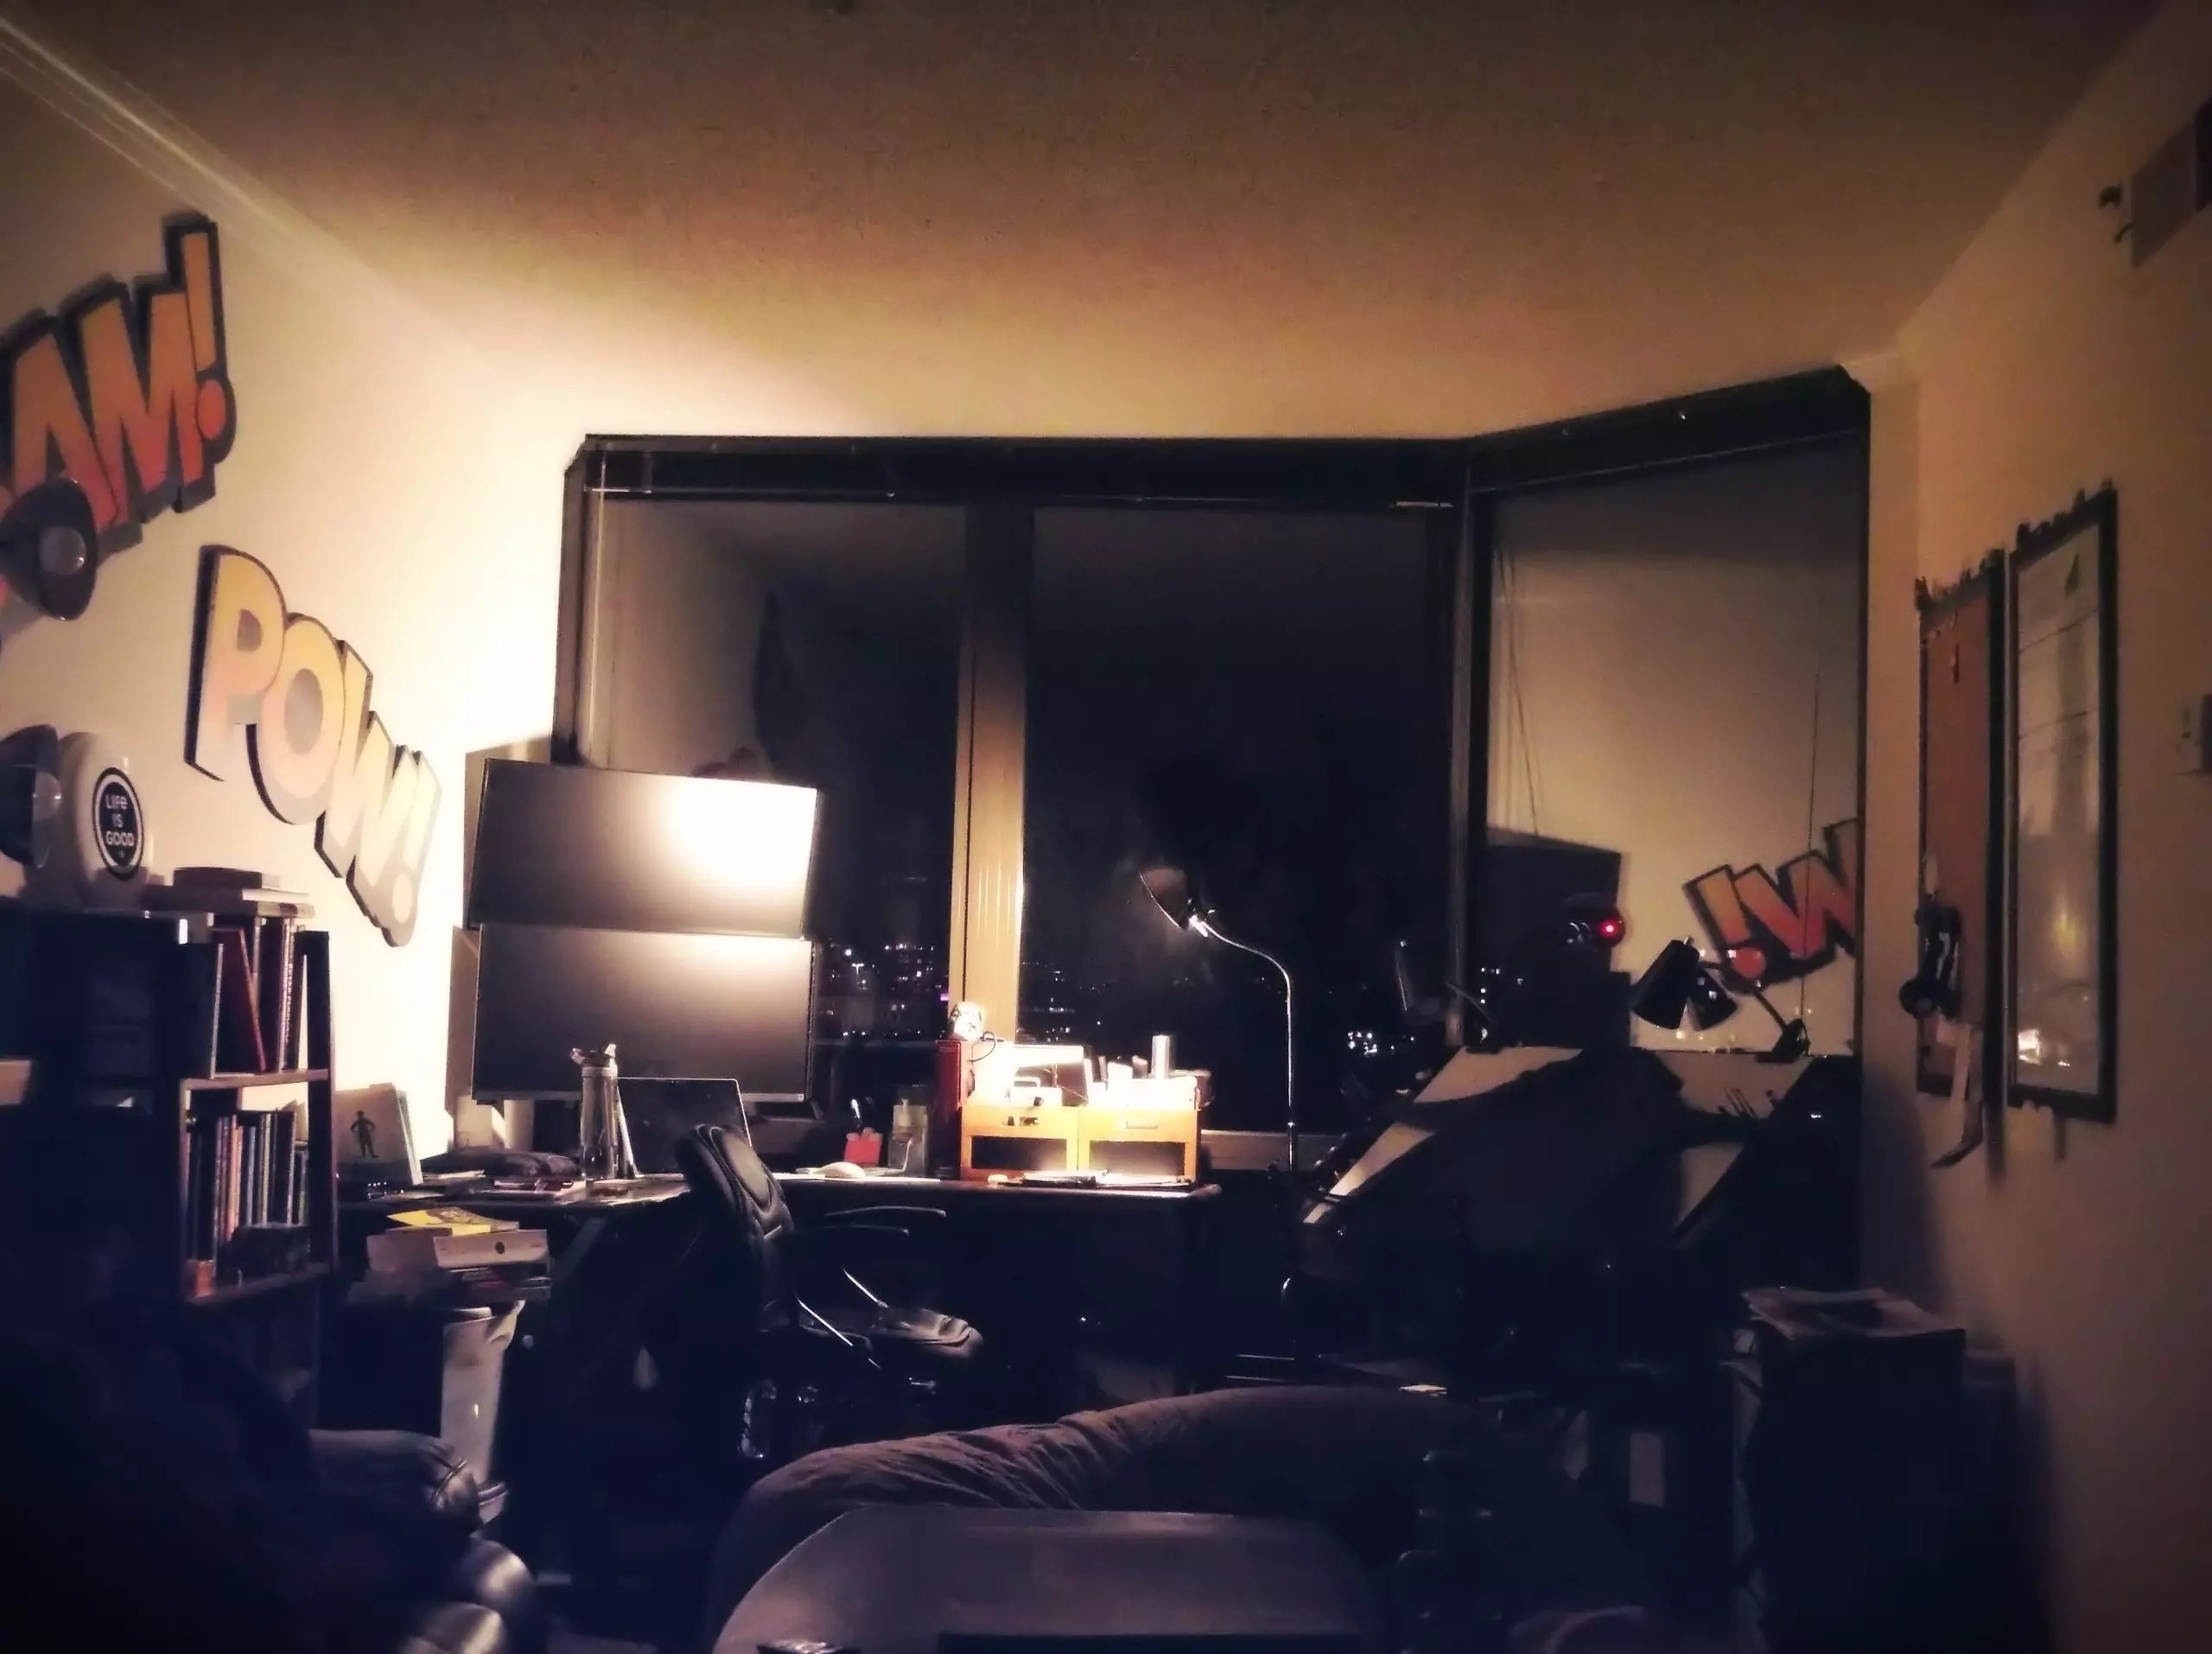 Personal Productivity Hidey Hole - a picture of my creative space at home.